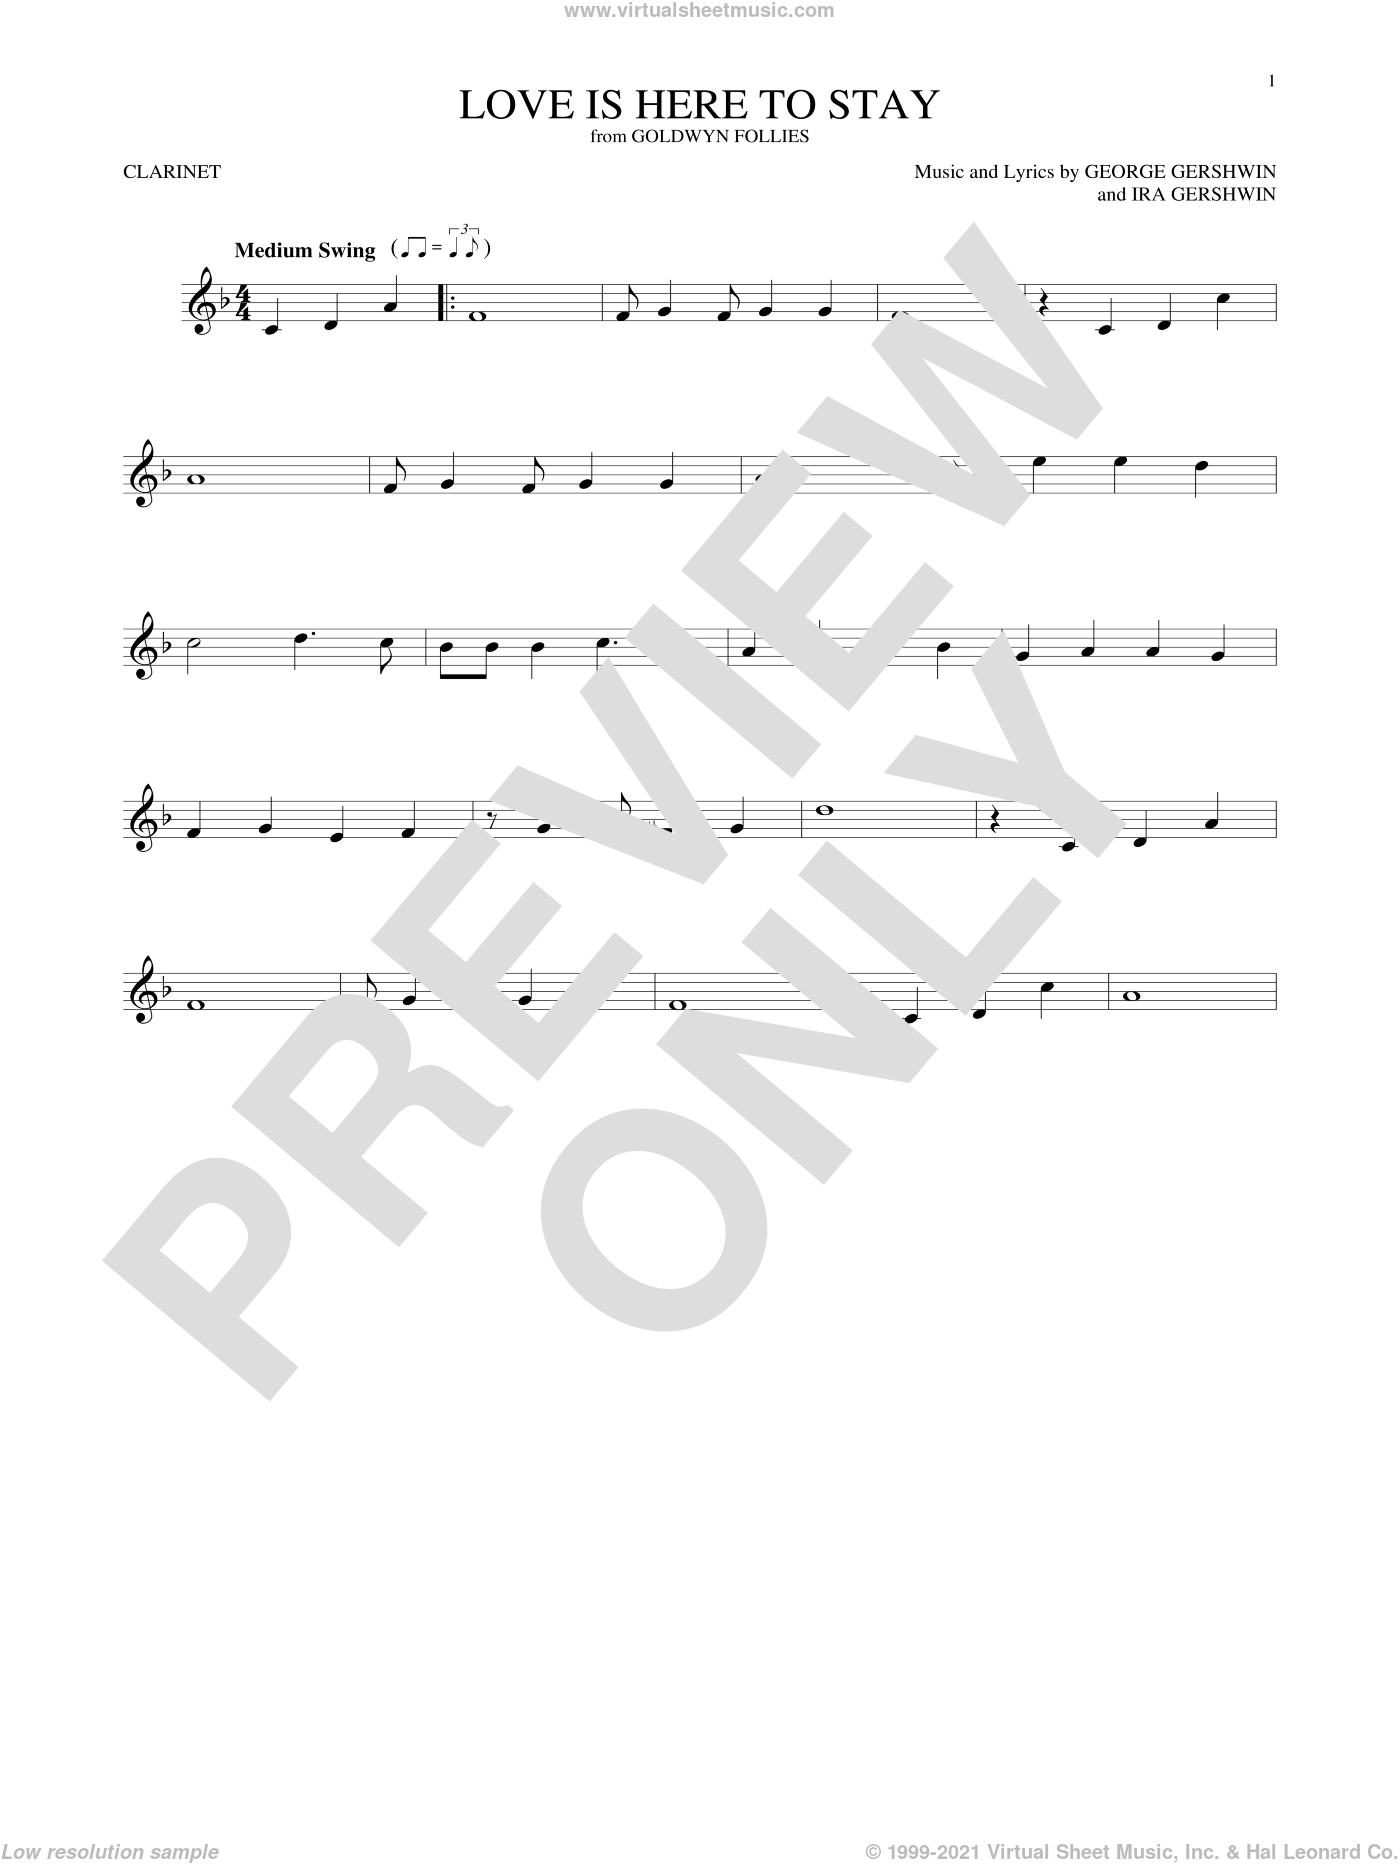 Love Is Here To Stay sheet music for clarinet solo by George Gershwin and Ira Gershwin, intermediate skill level